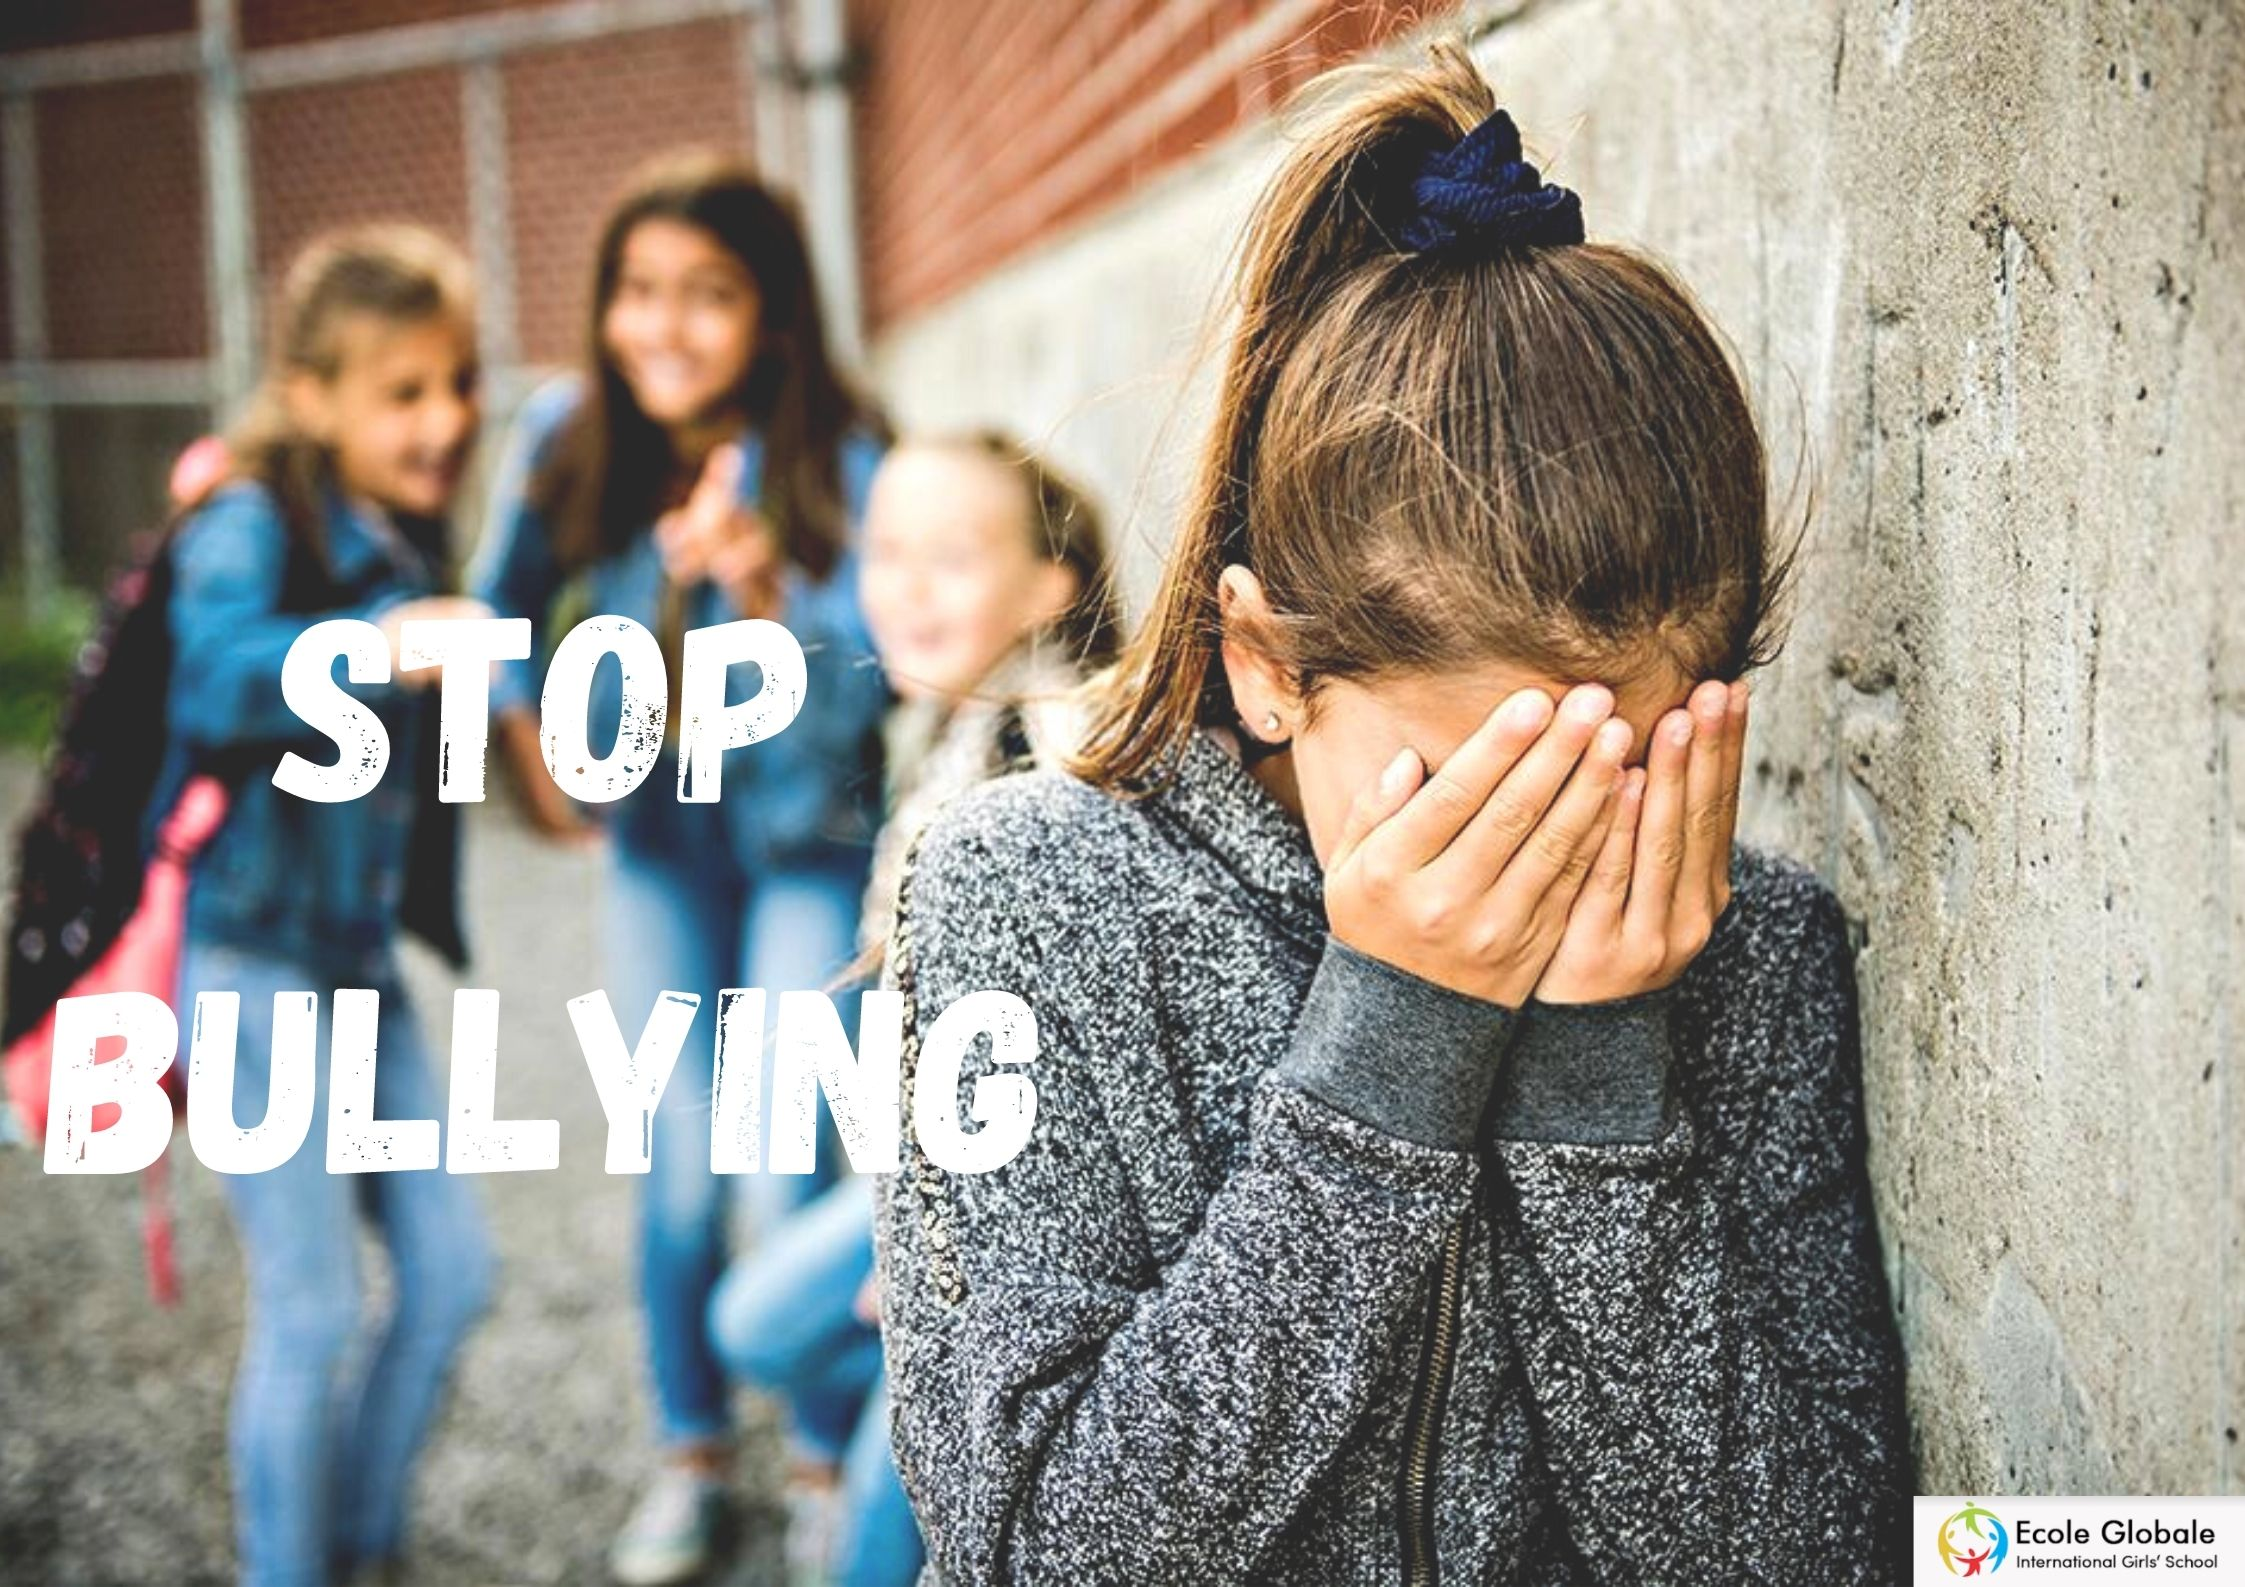 HOW TO HELP A CHILD WHO IS A VICTIM OF BULLYING